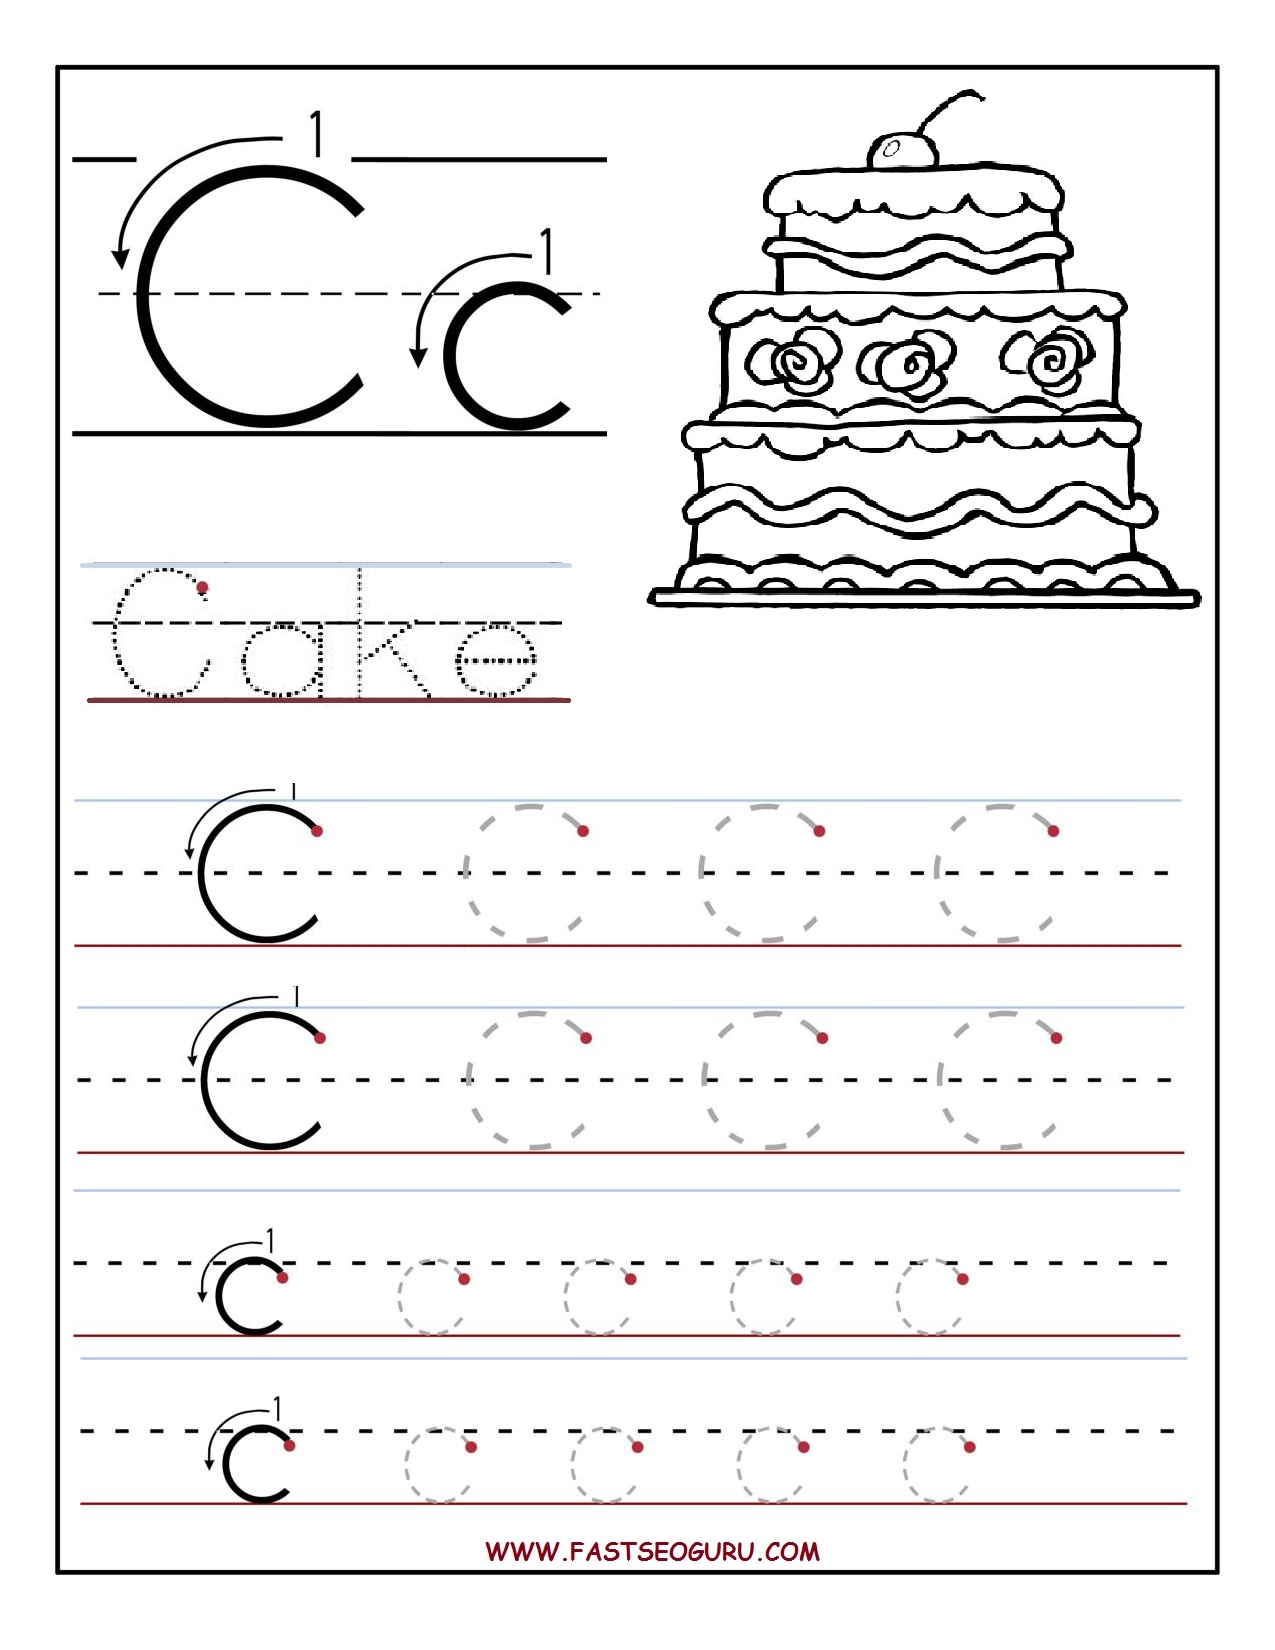 Worksheet For Preschoolers